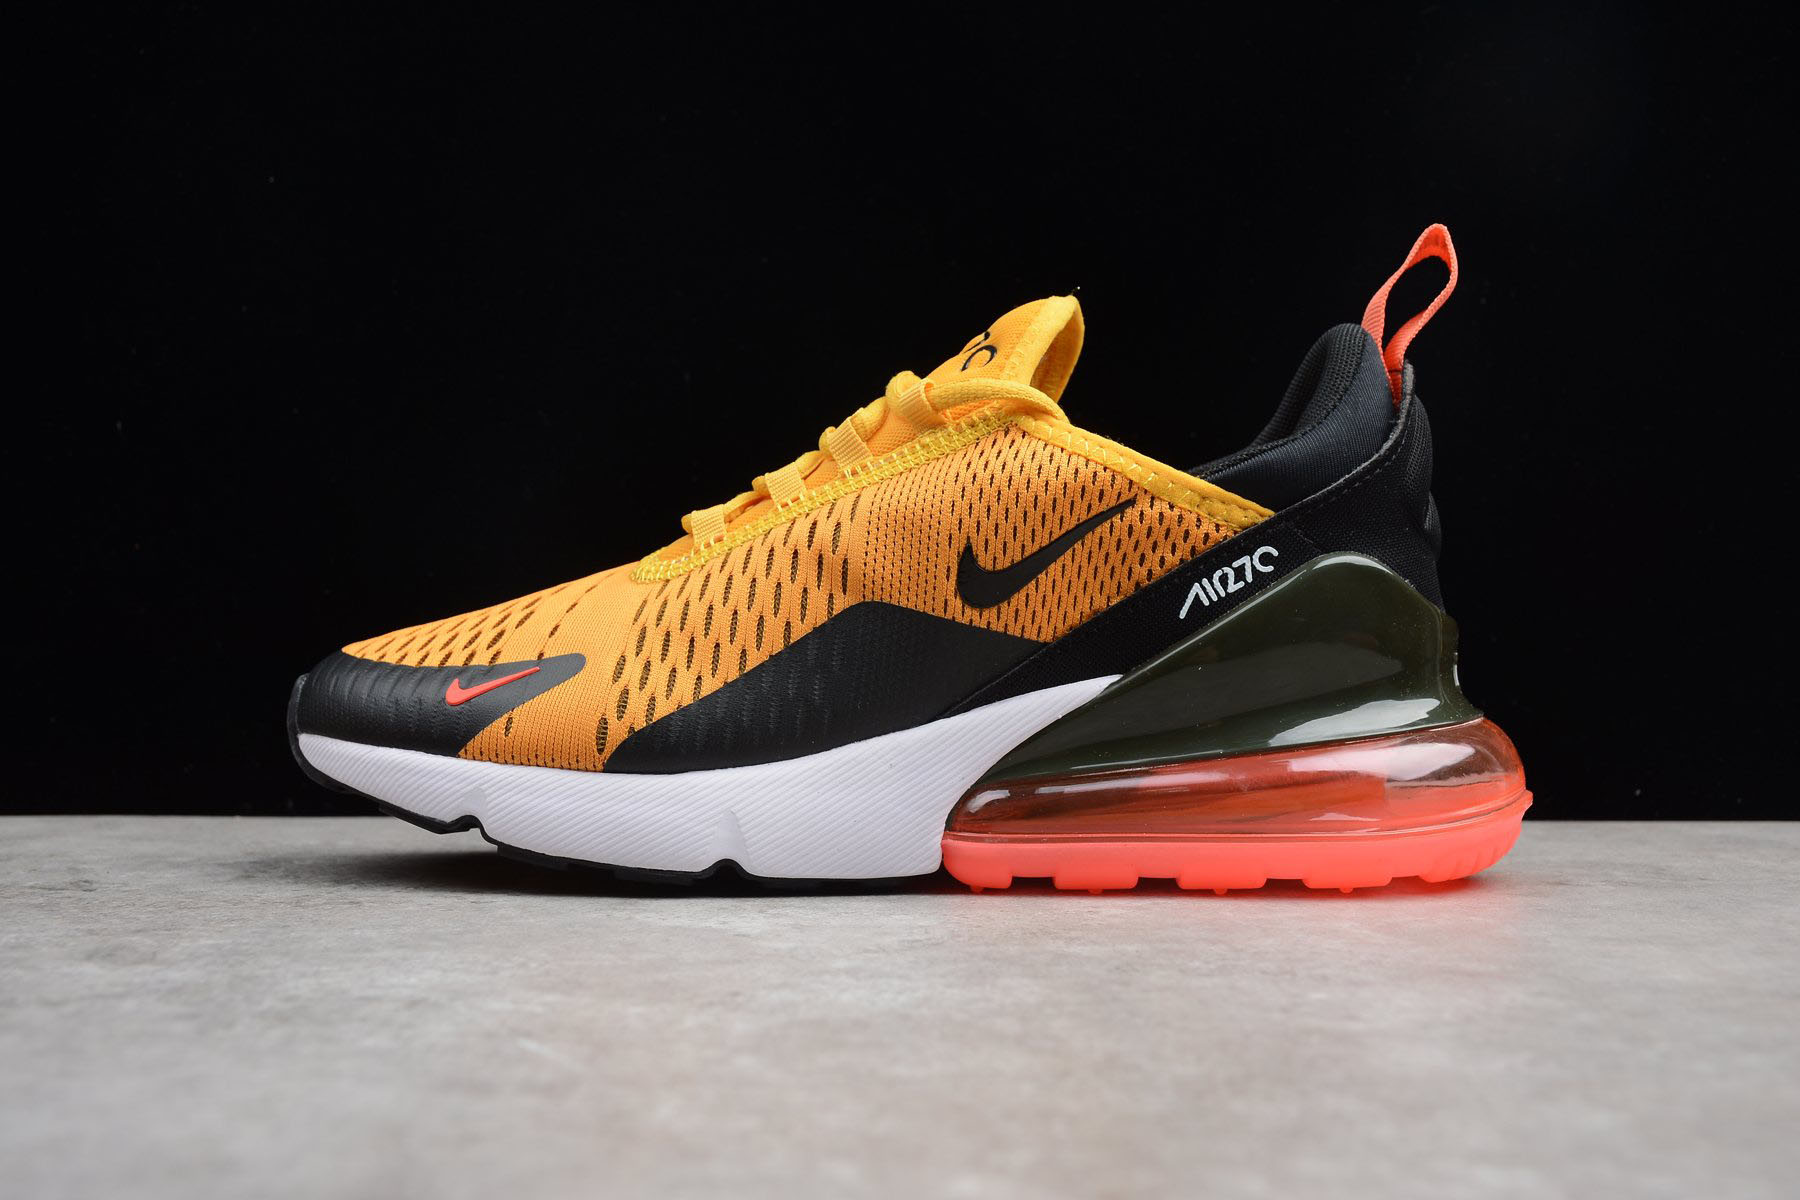 Two More Nike Air Max 270 Colorways Are Coming in March